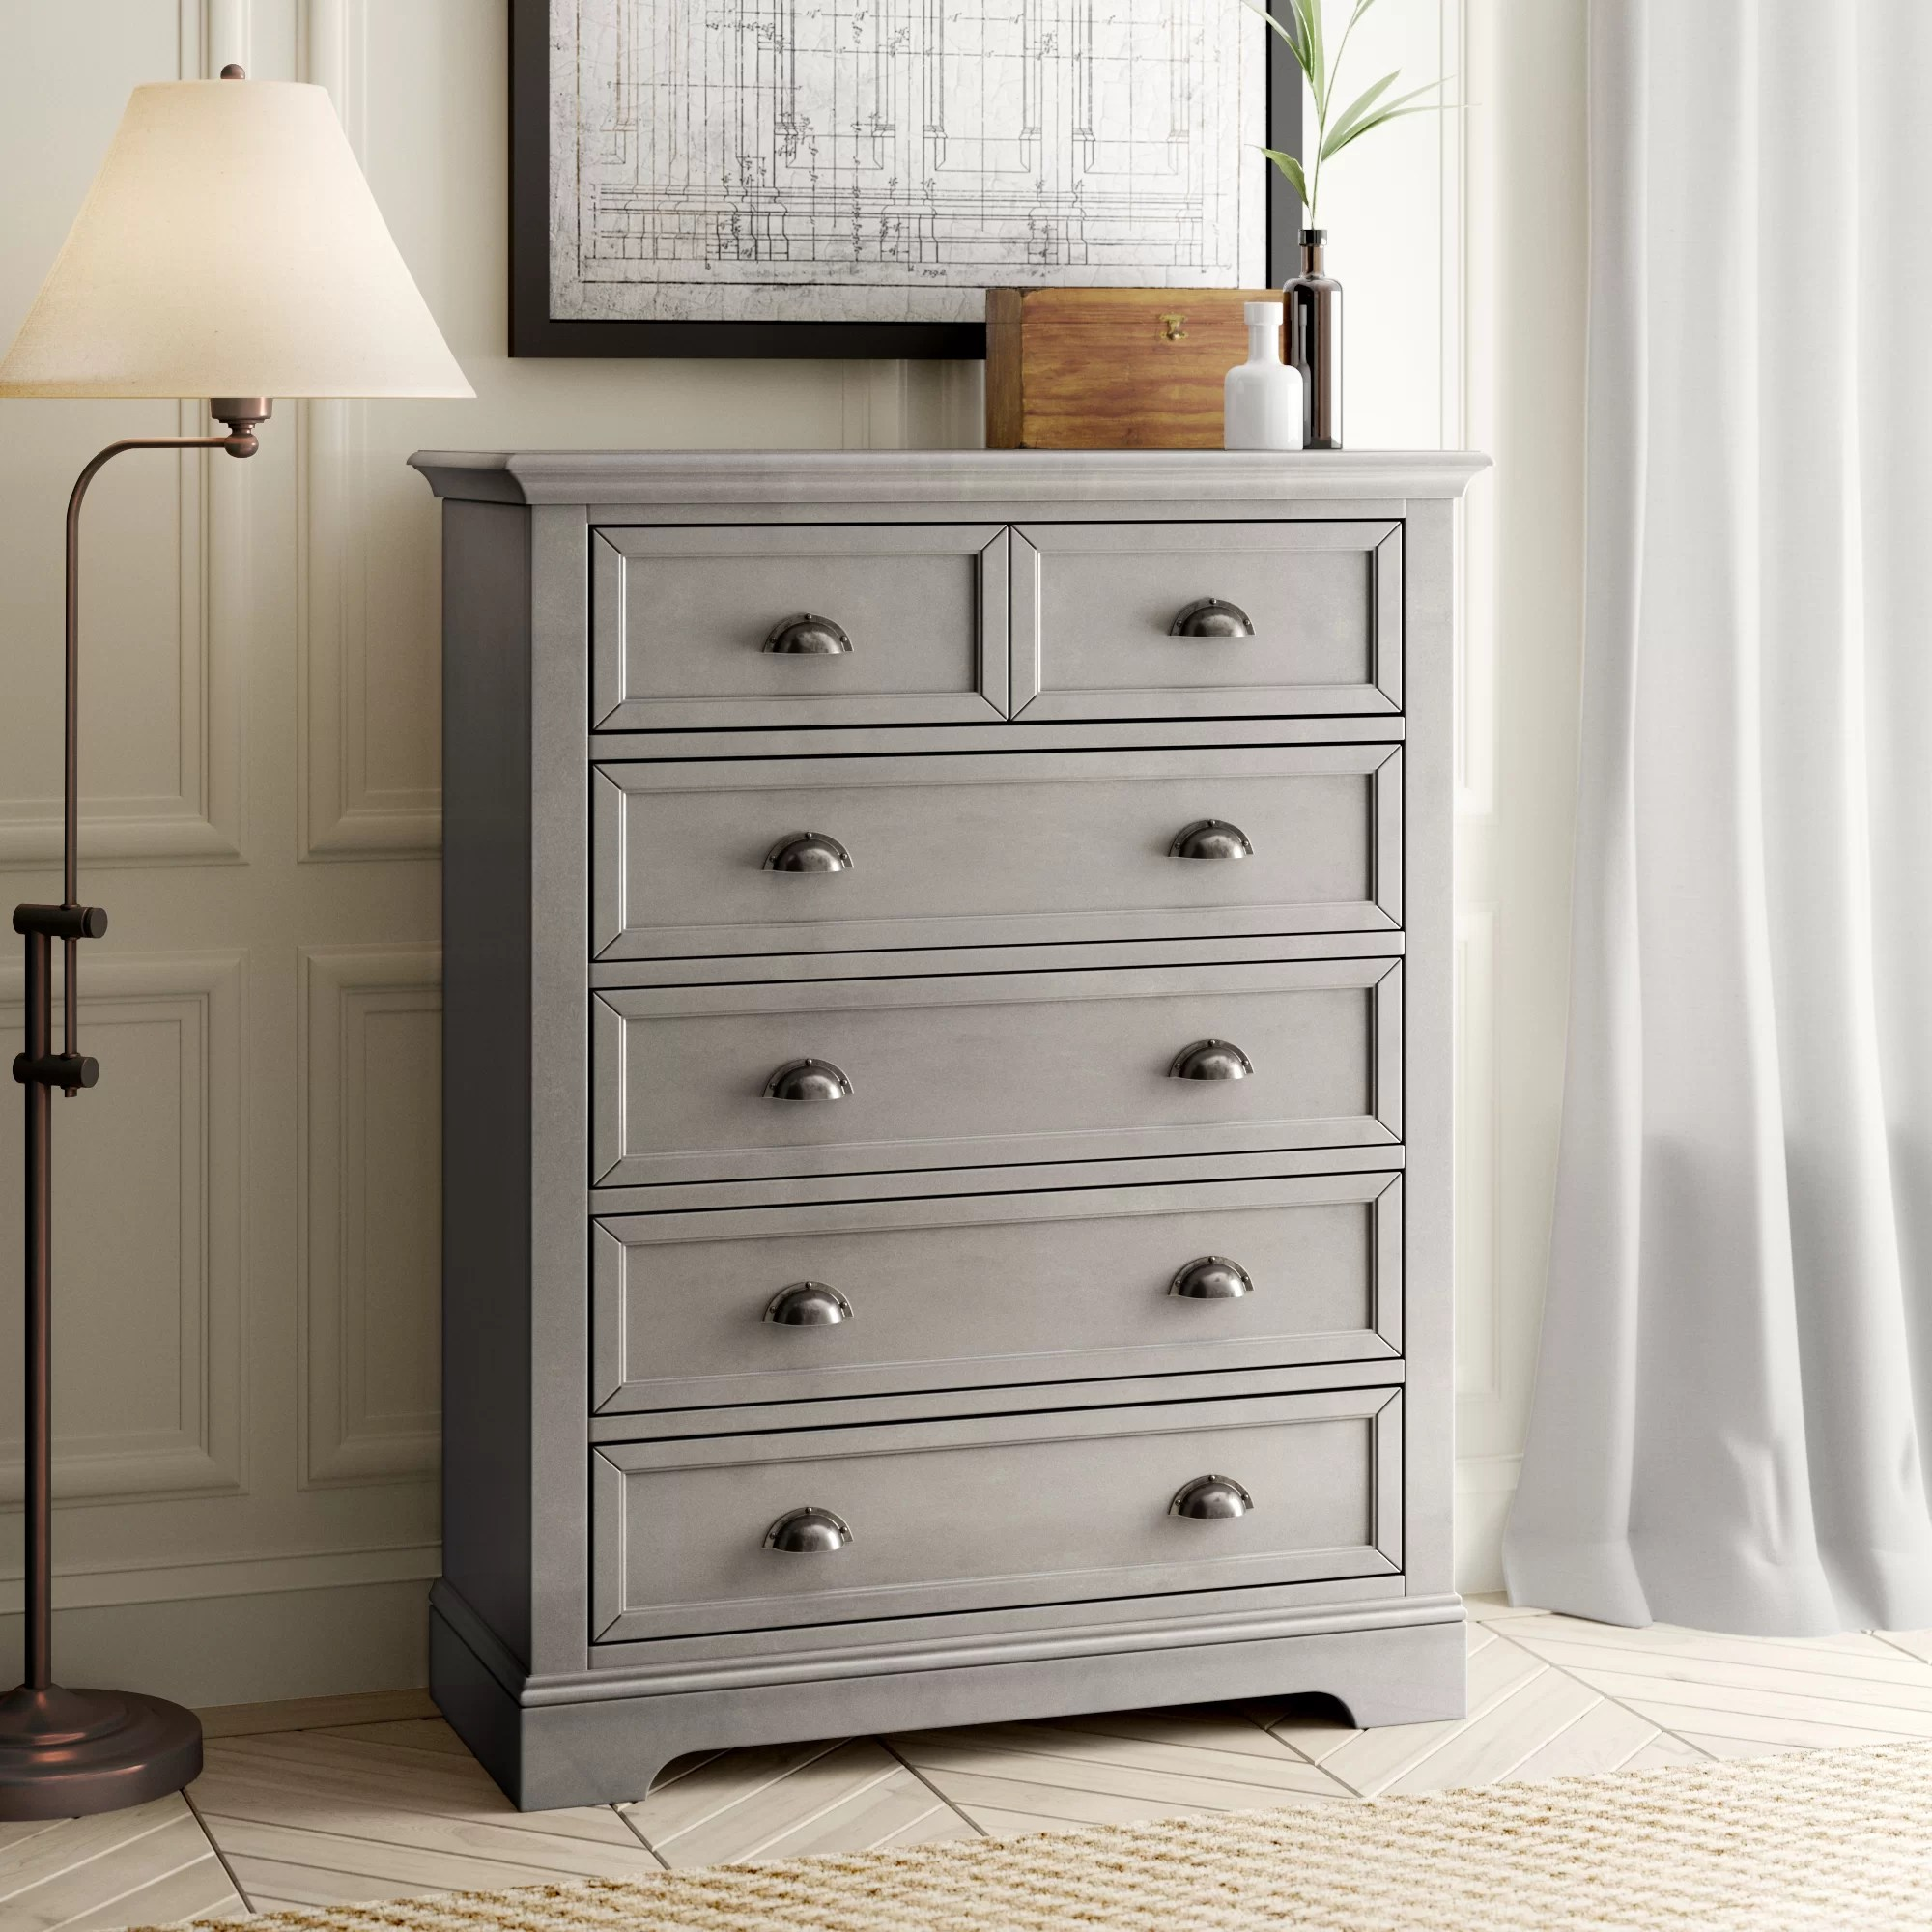 6 Drawer Chest Of Drawers Appleby 6 Drawer Chest